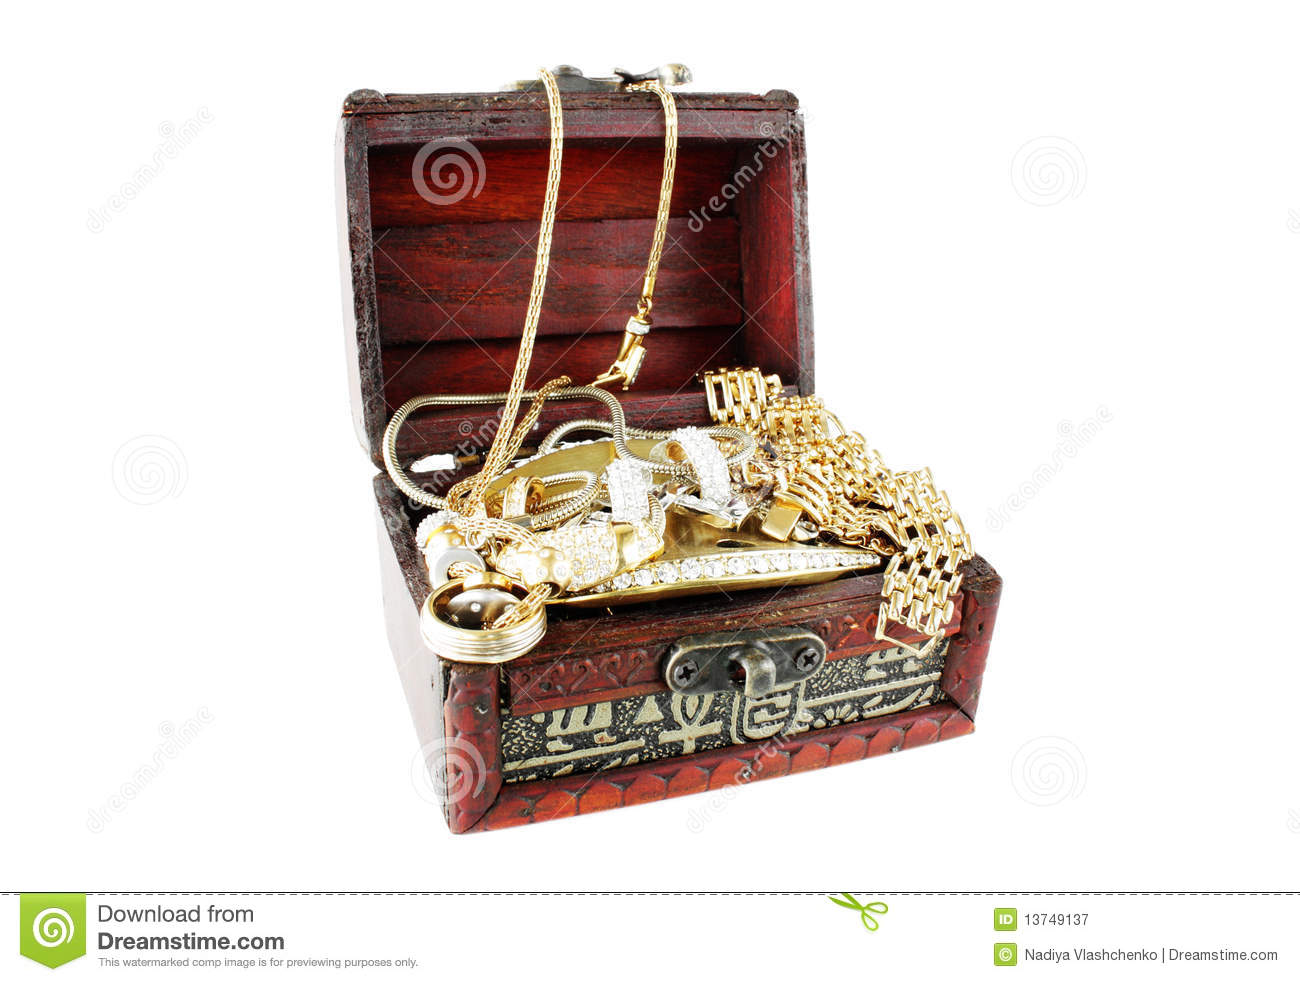 Wooden Casket With Accessories Stock Image - Image of lock